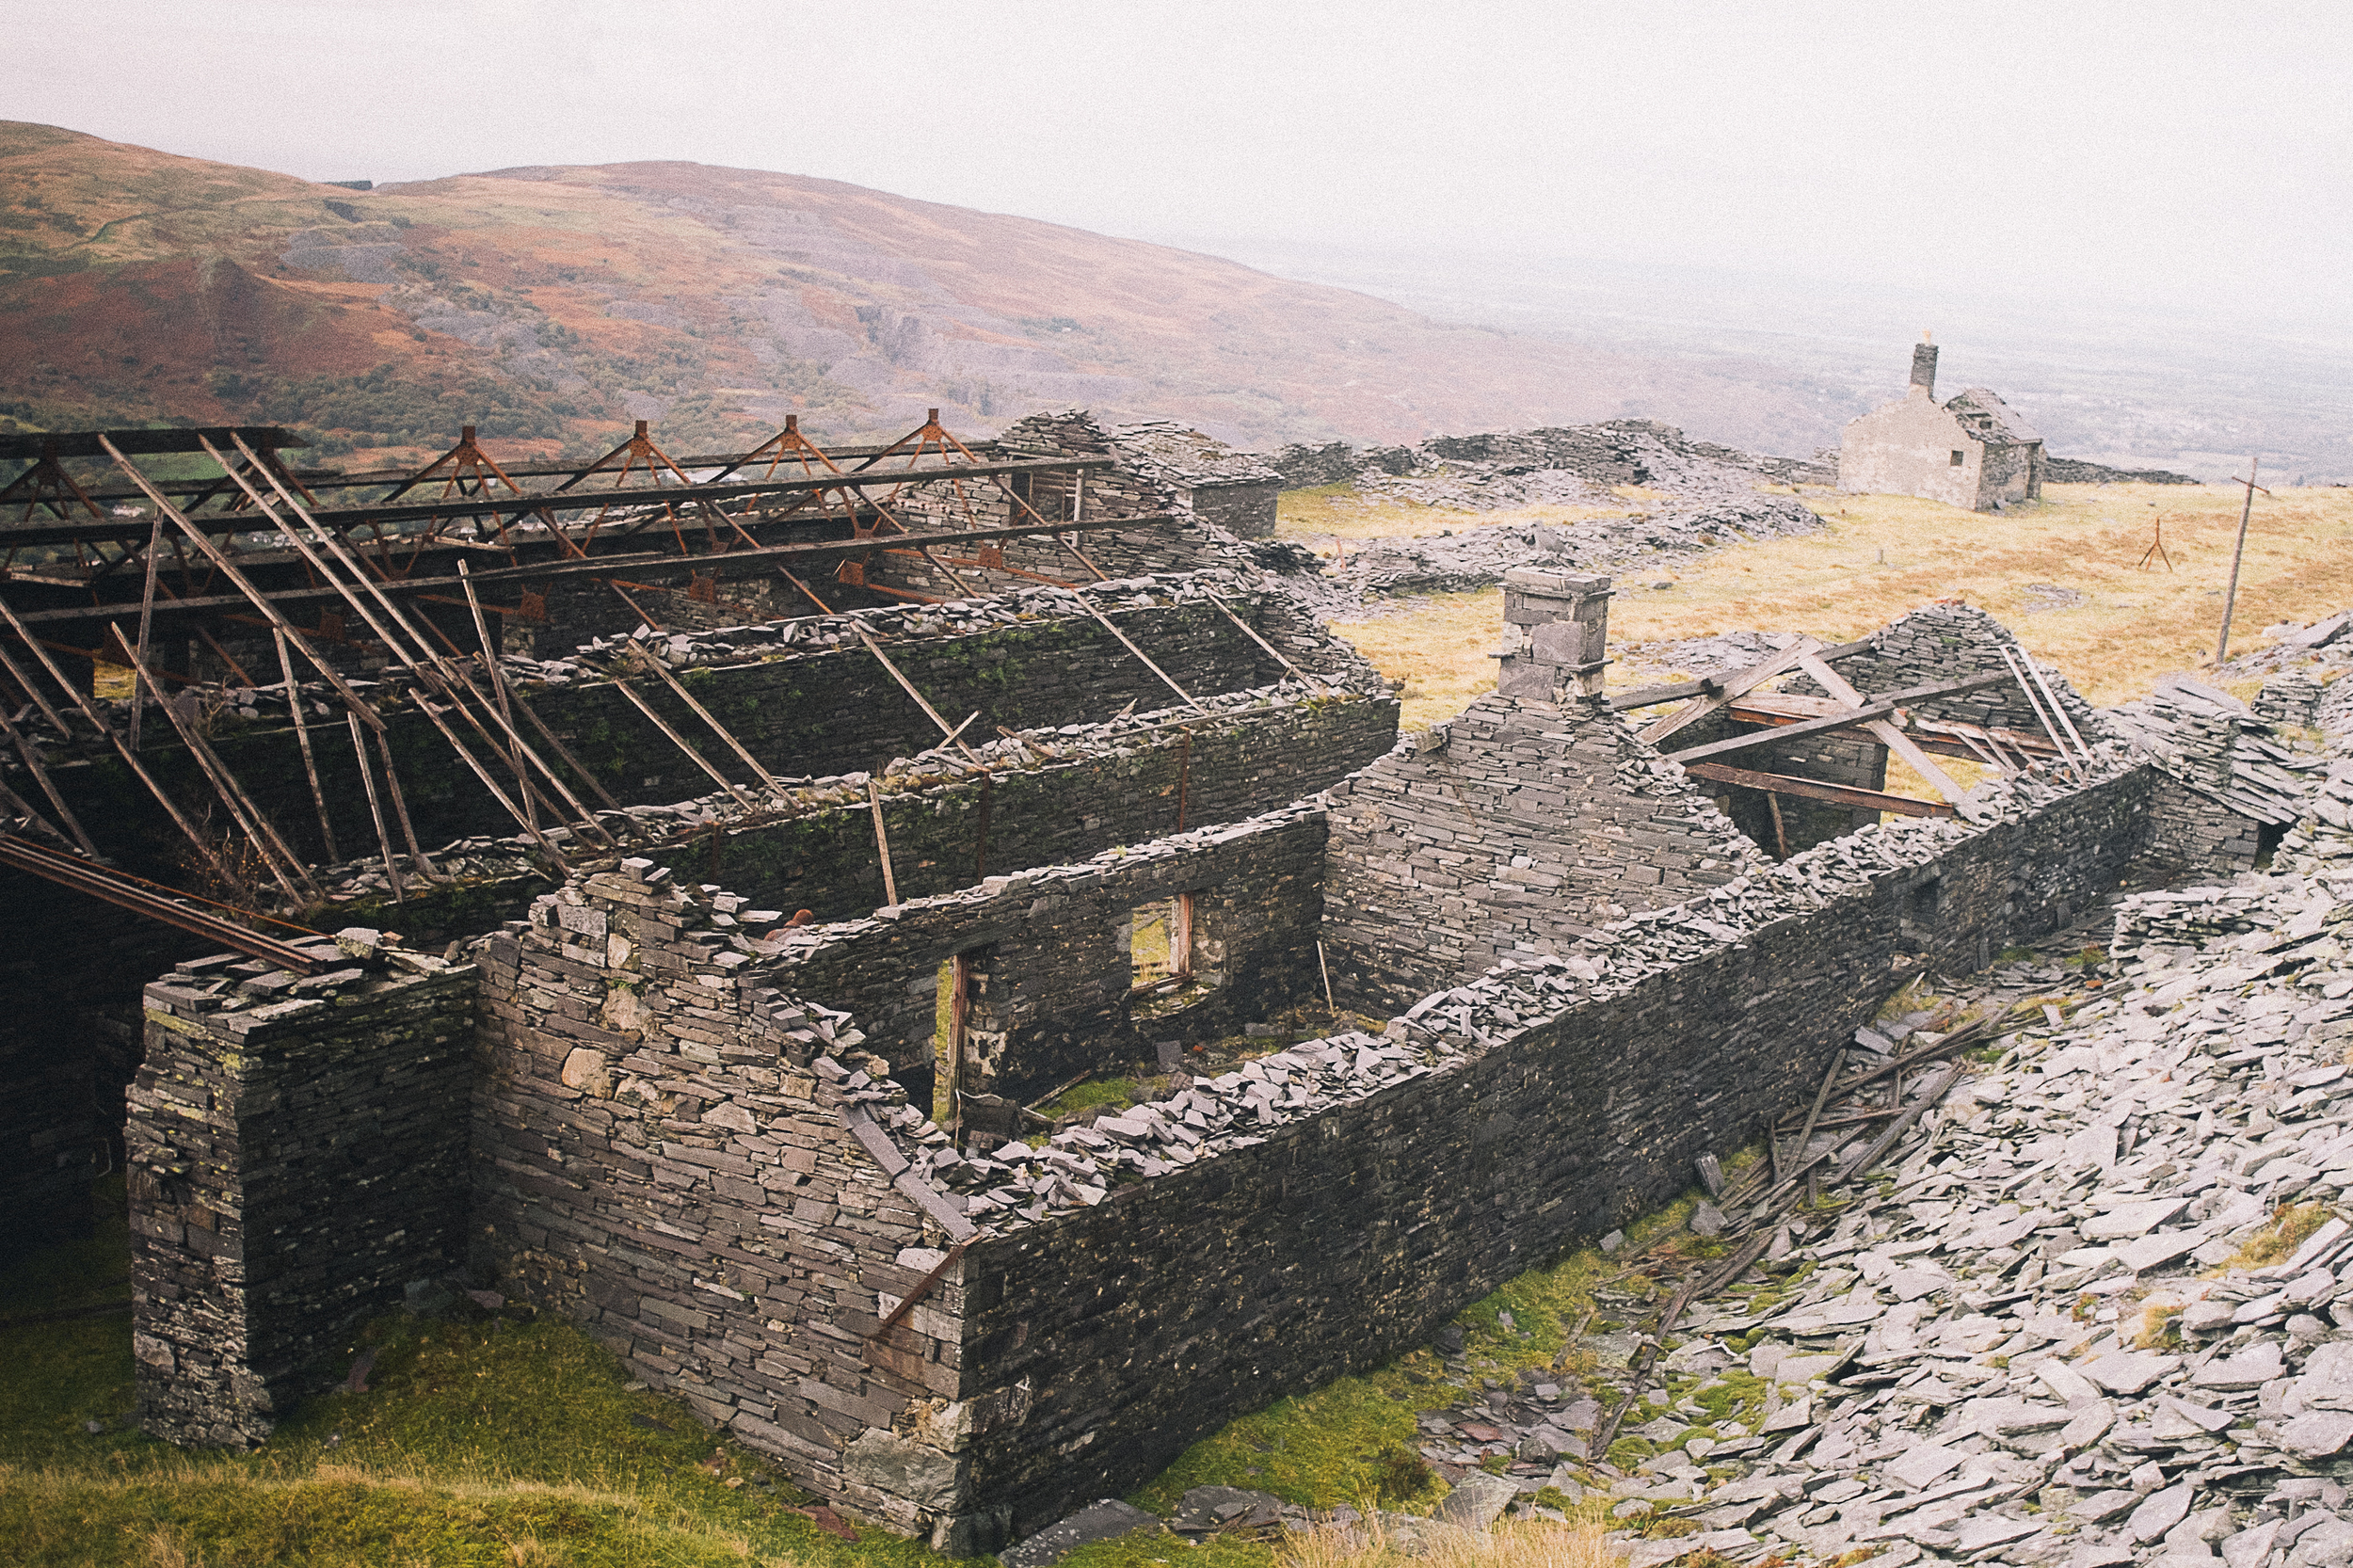 The Dinorwic slate quarry in North Wales - worth the epic walk up there.